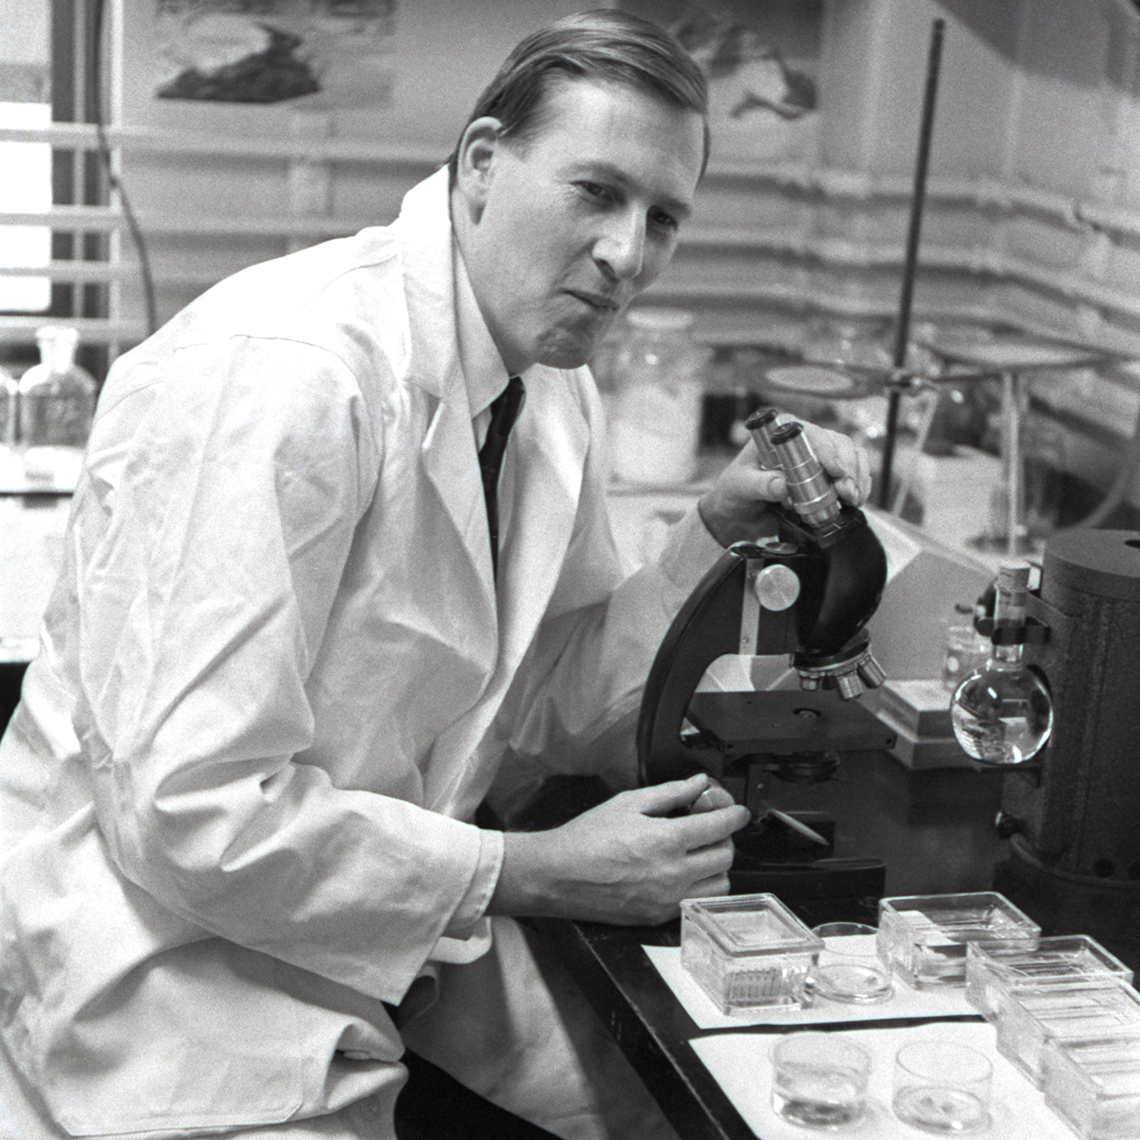 Roger Bannister using a microscope